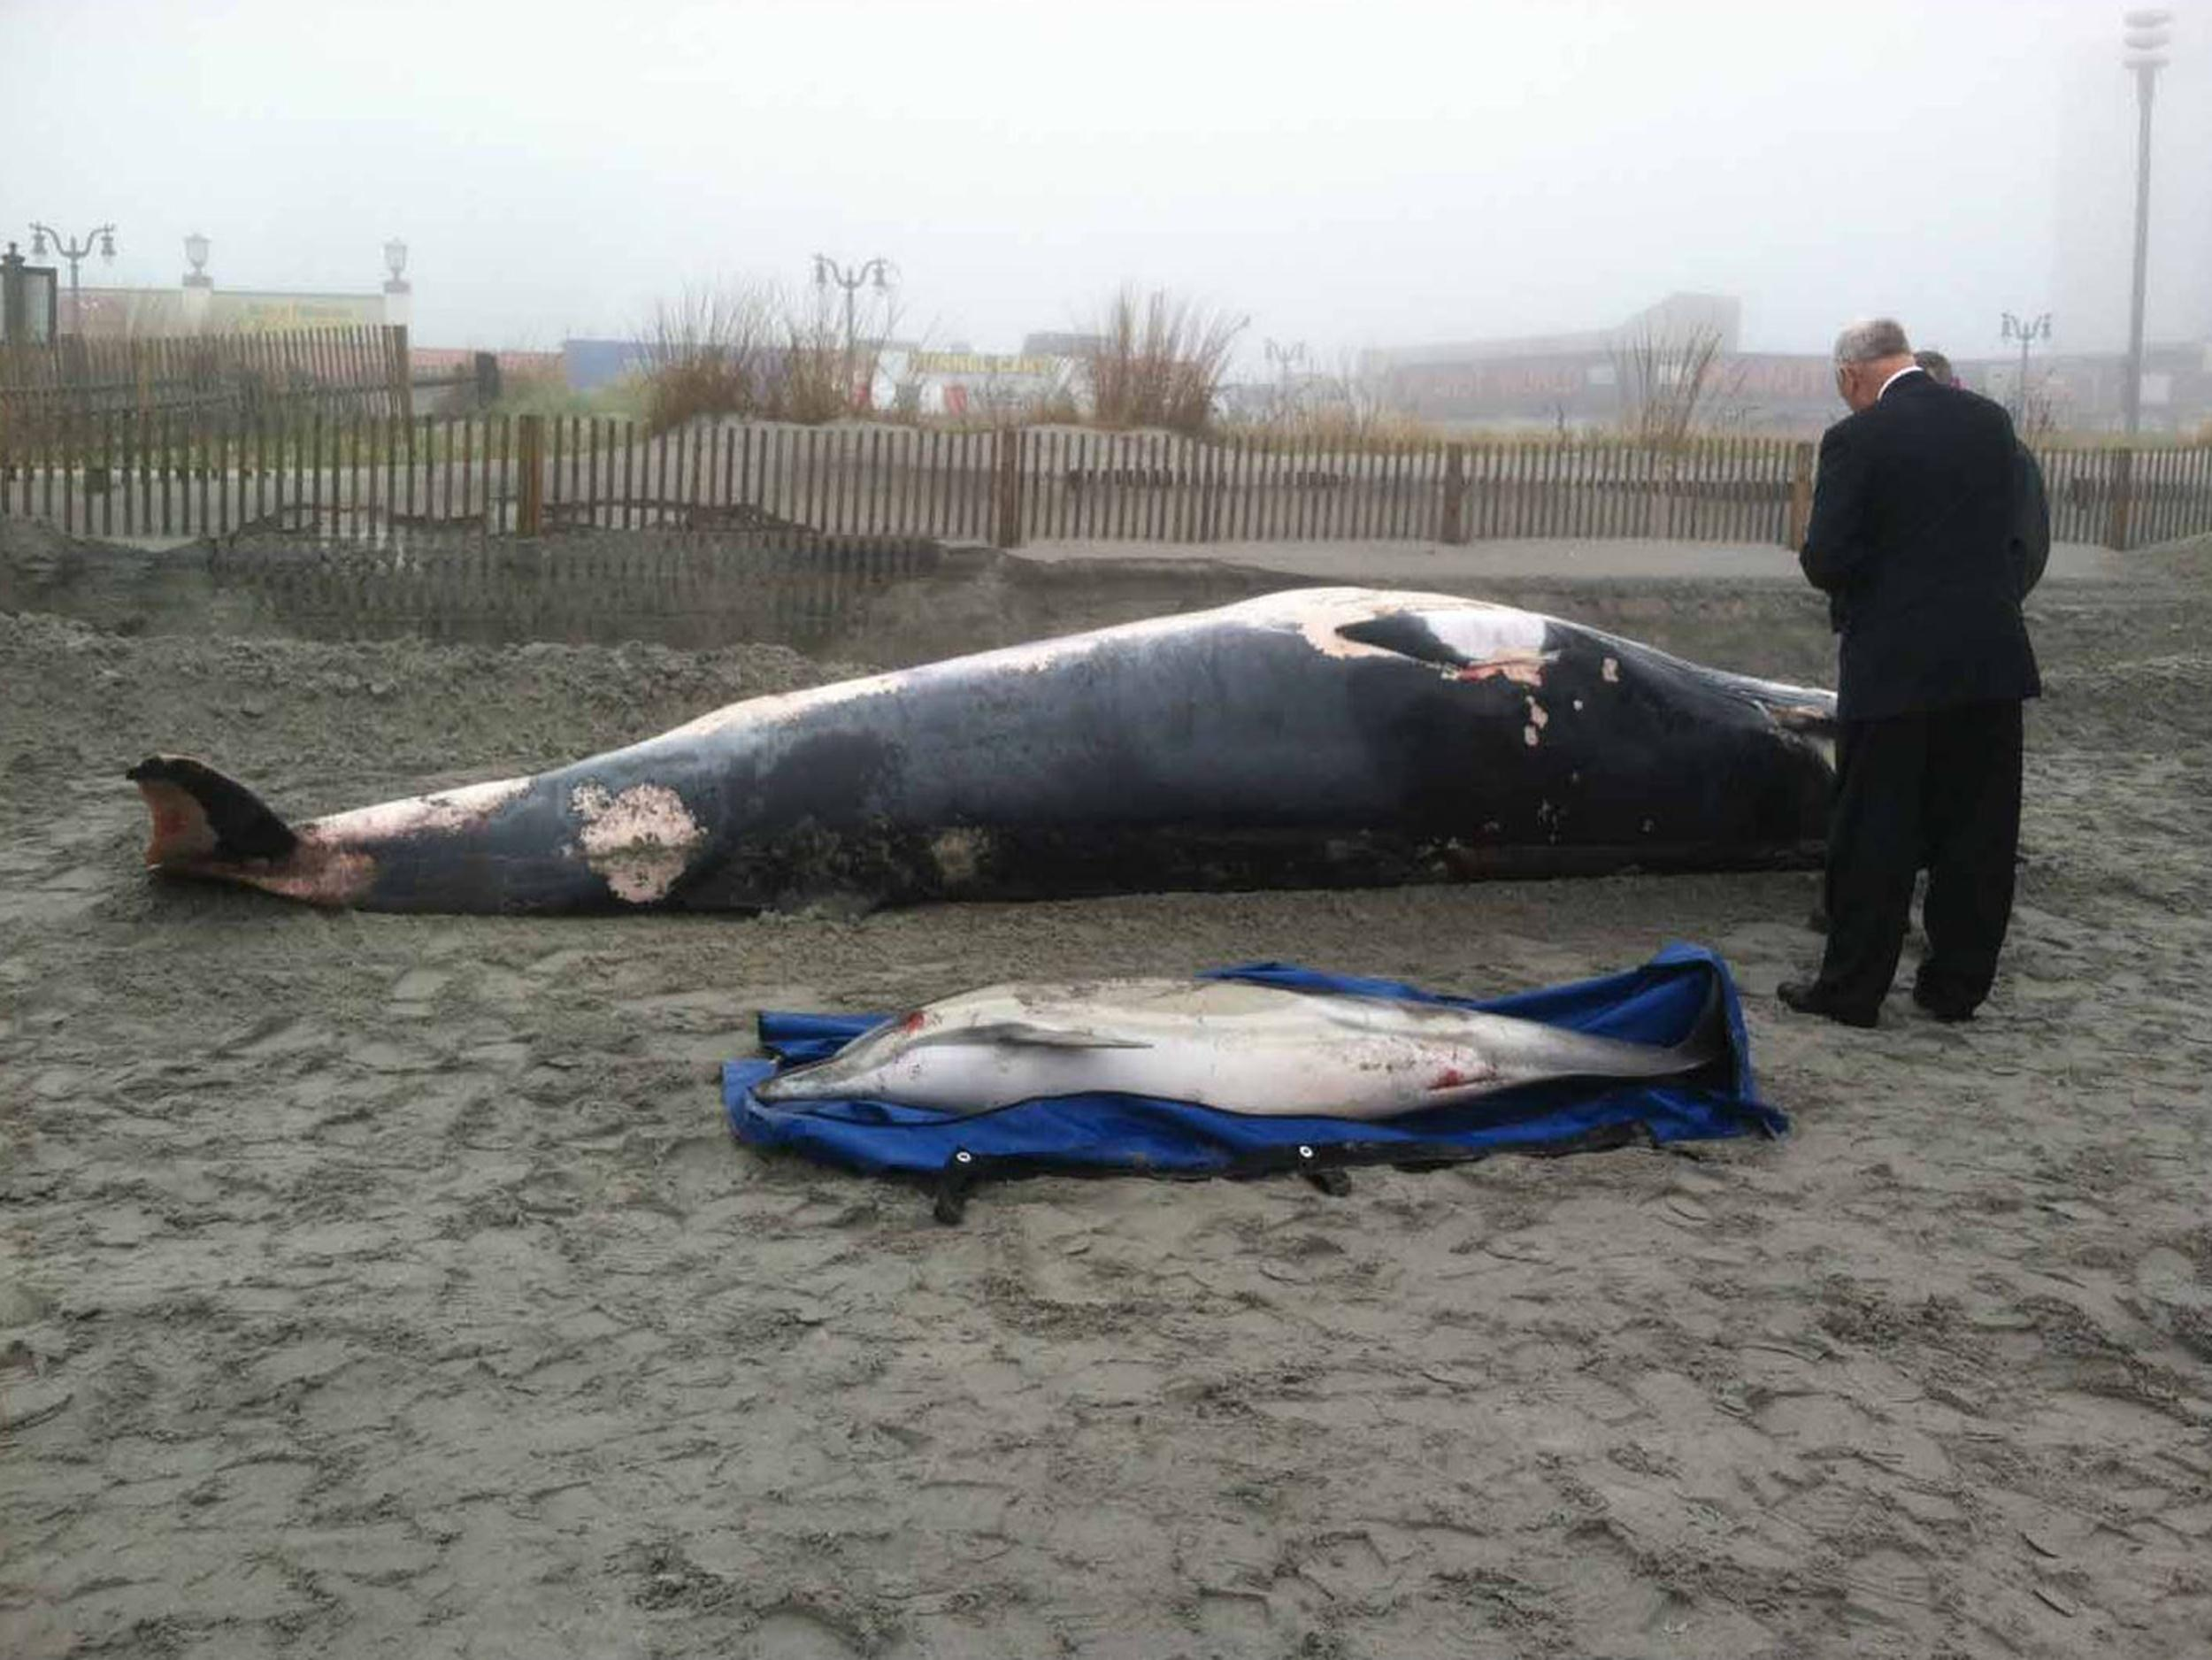 A minke whale washed up along with a common dolphin in Atlantic City, N.J., on May 1, 2014.